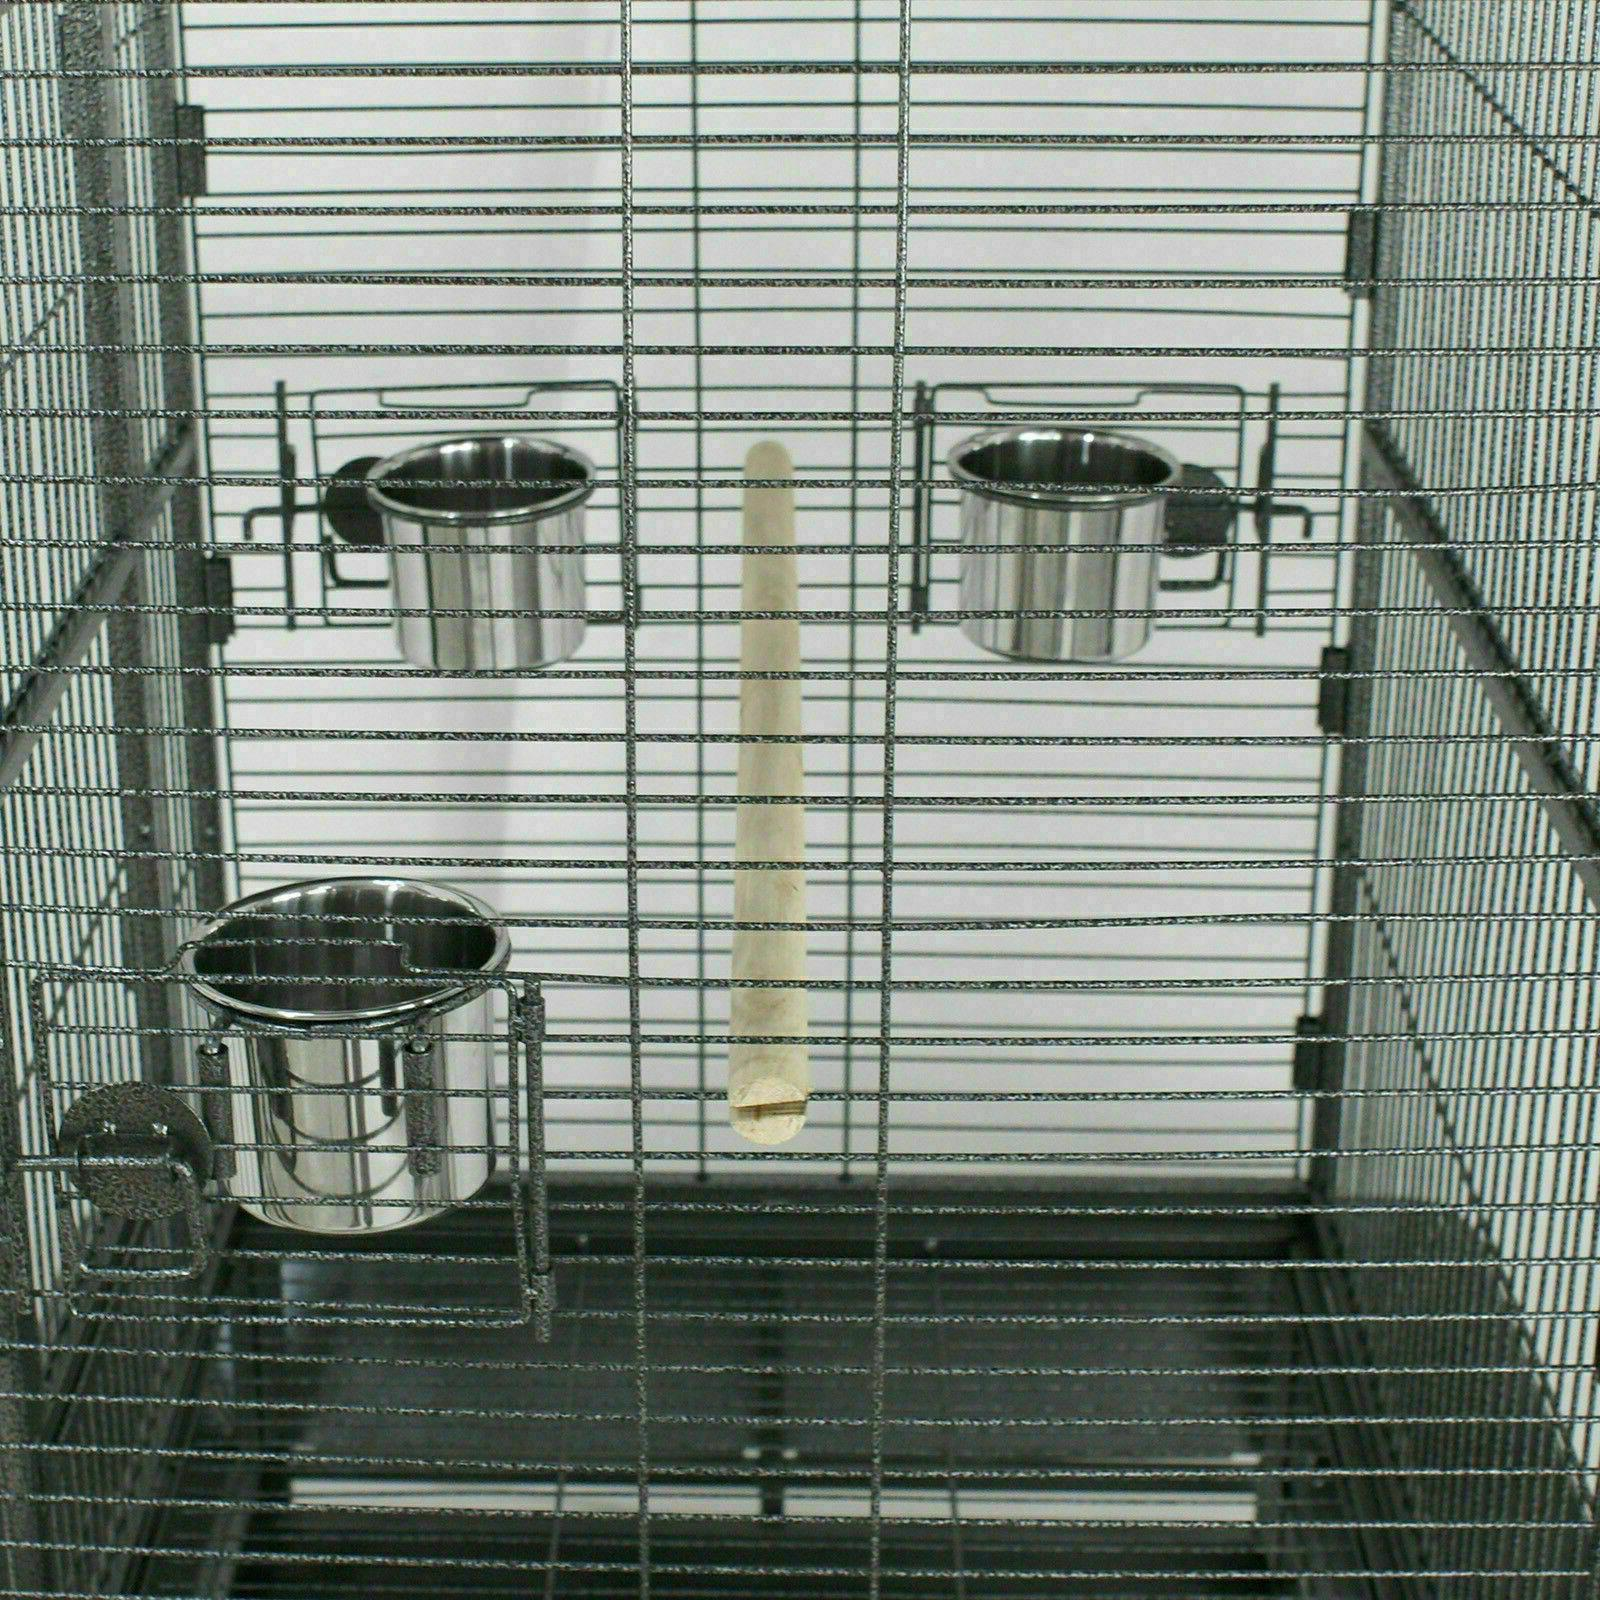 lovely acrylic bird cages